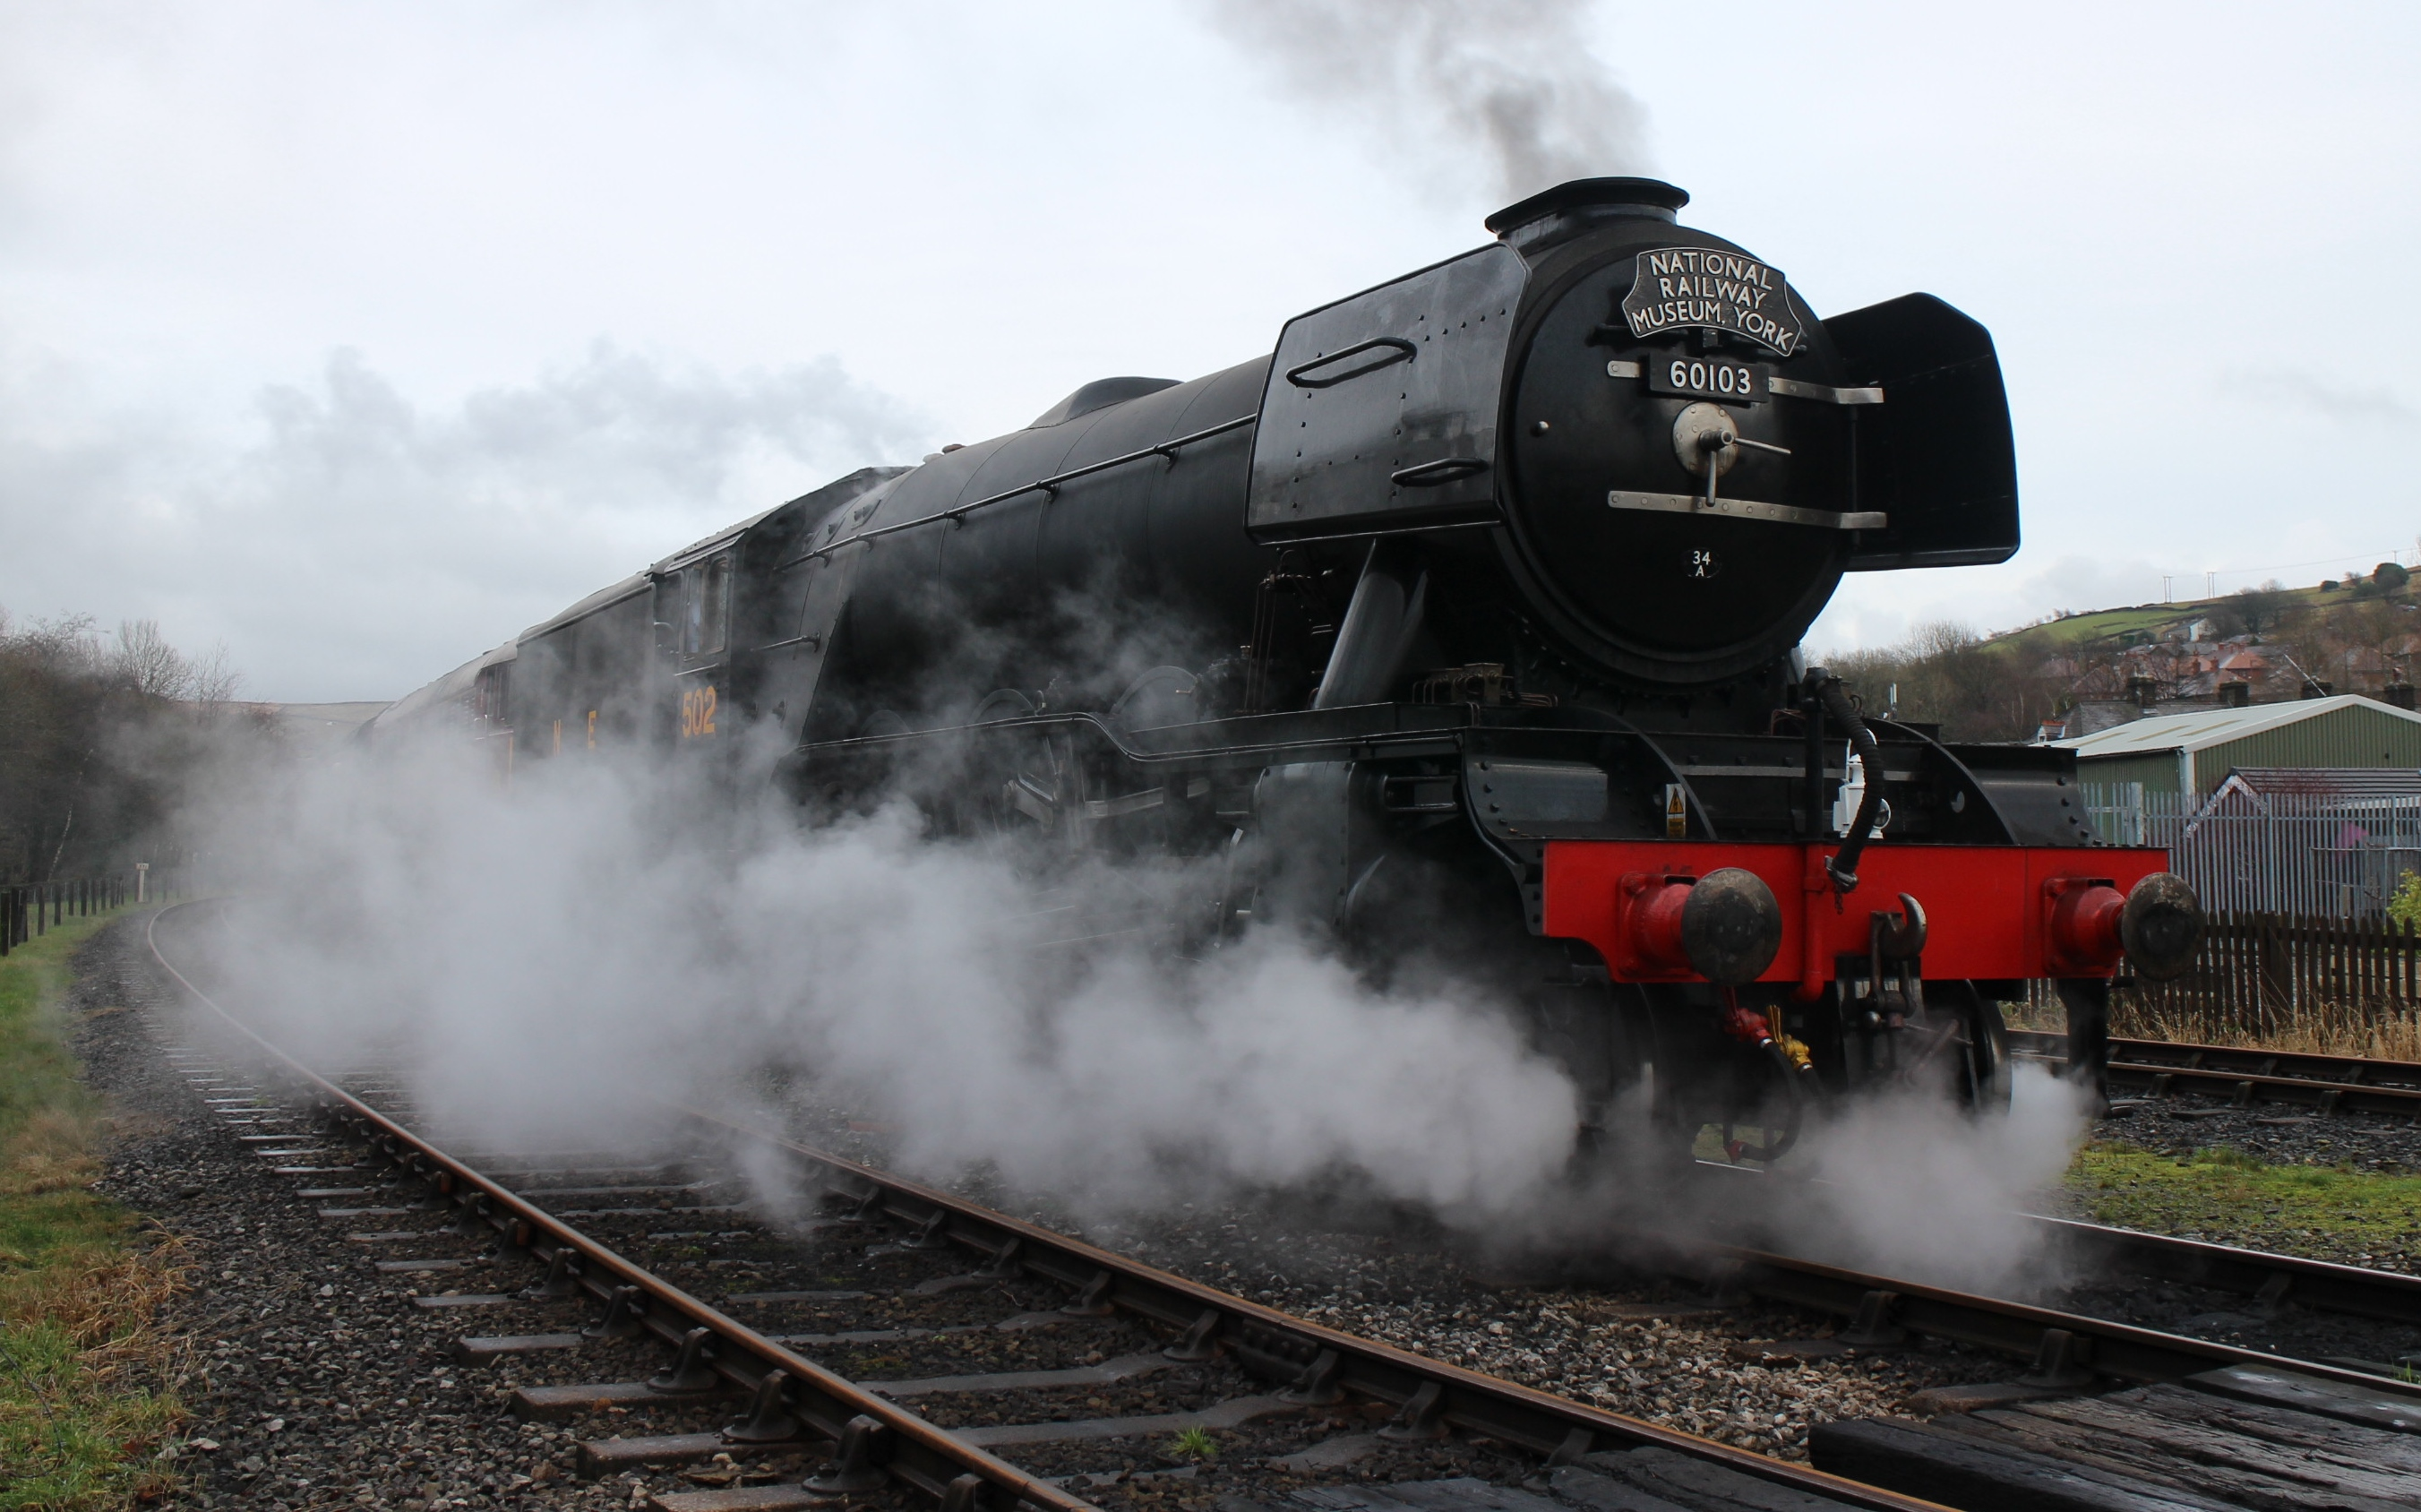 Flying Scotsman at Rawtenstall � Robert Mason 9.1.16 � Robert Mason 2016